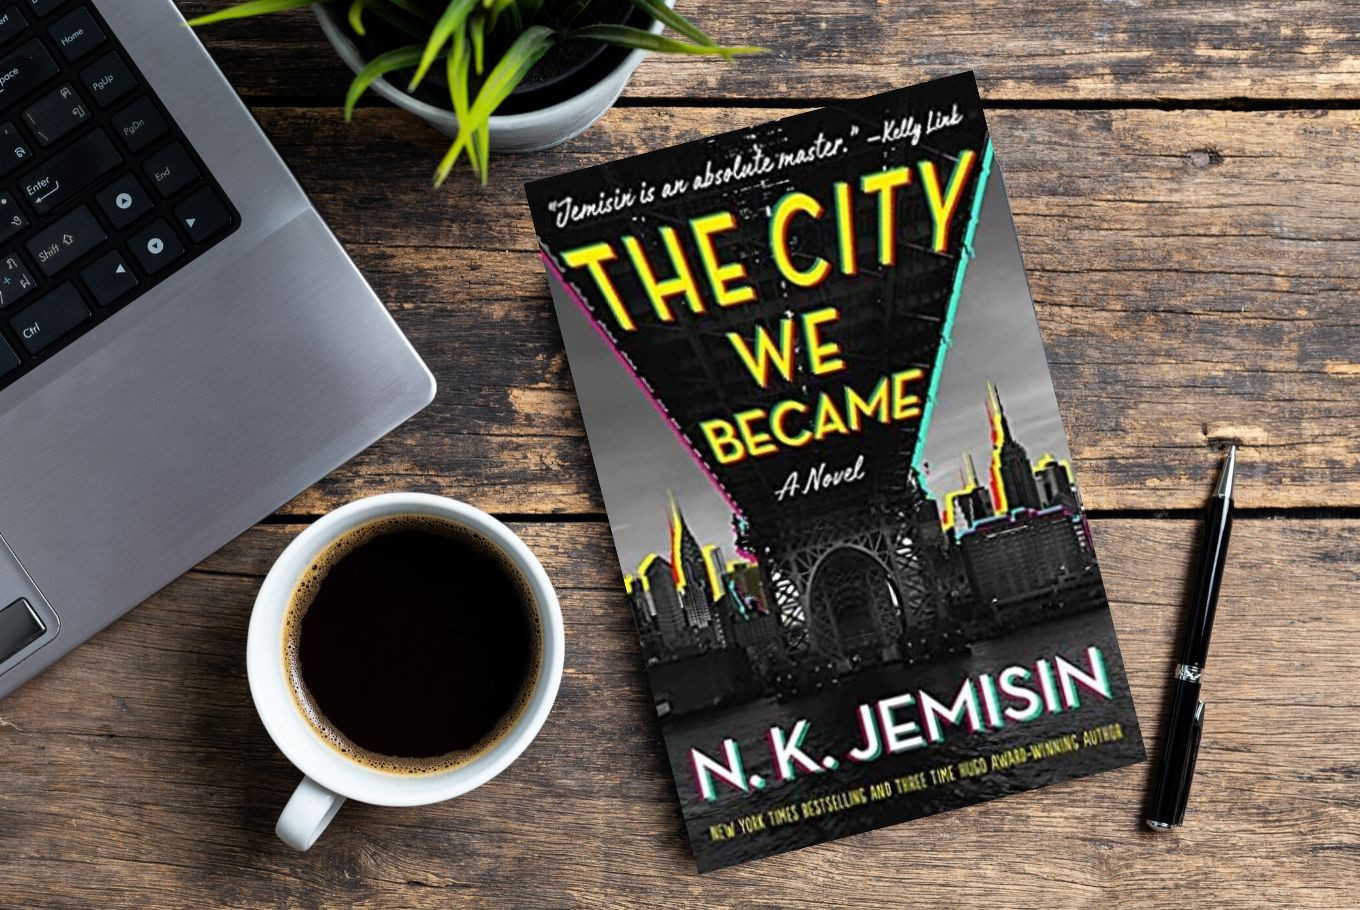 In 'The City We Became', New York is born